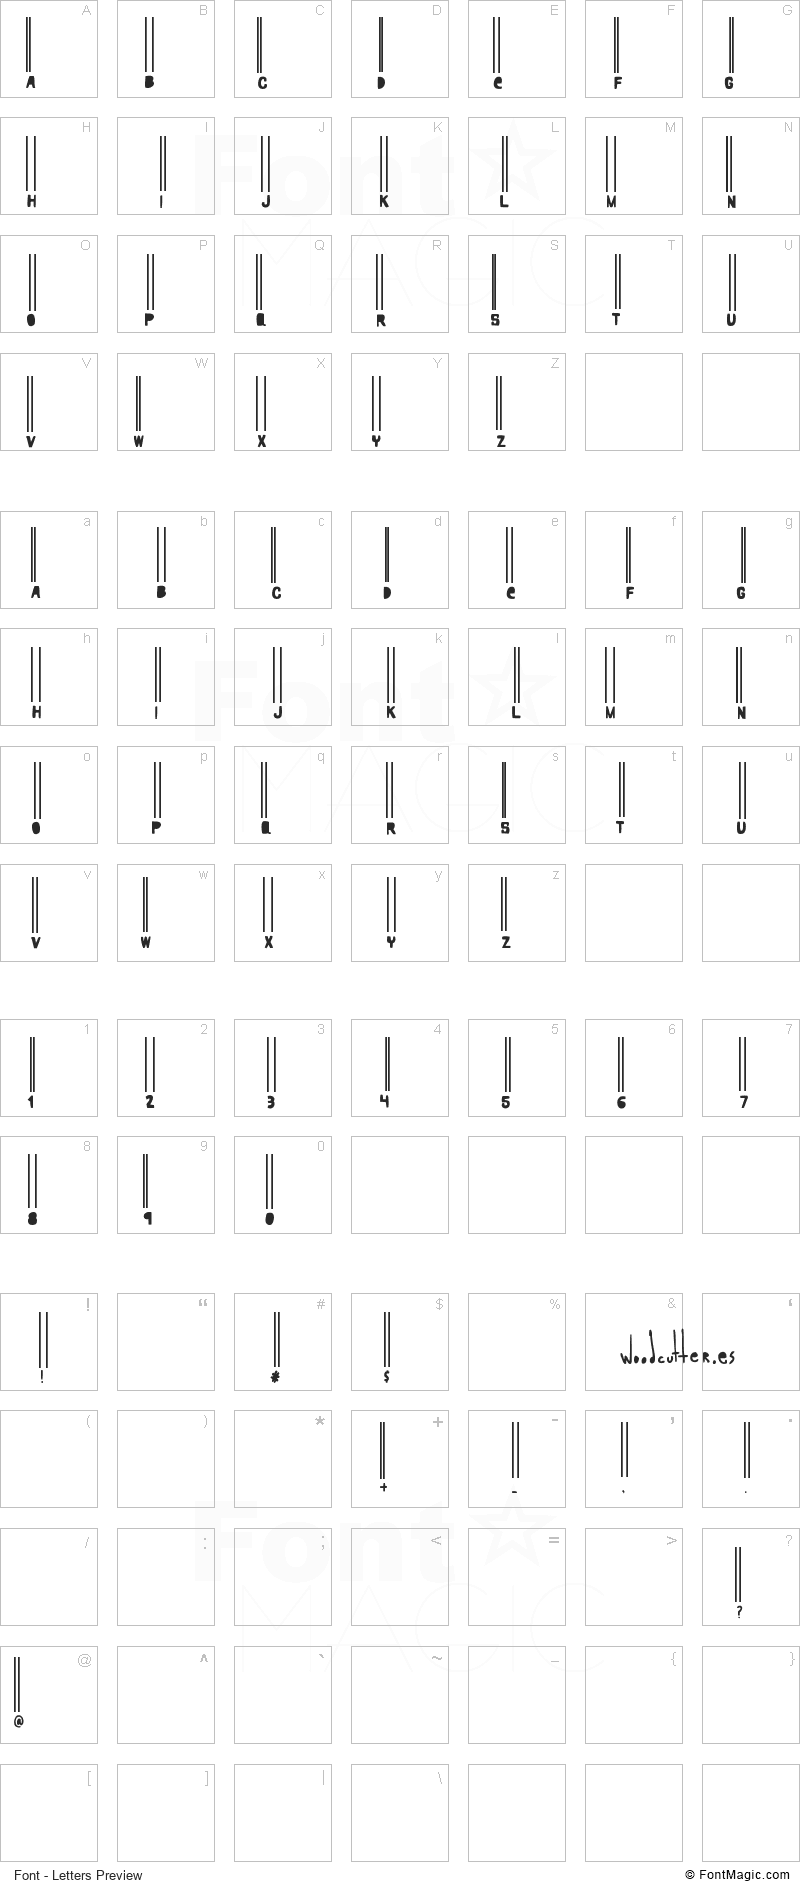 Woodcutter Barcode Font - All Latters Preview Chart